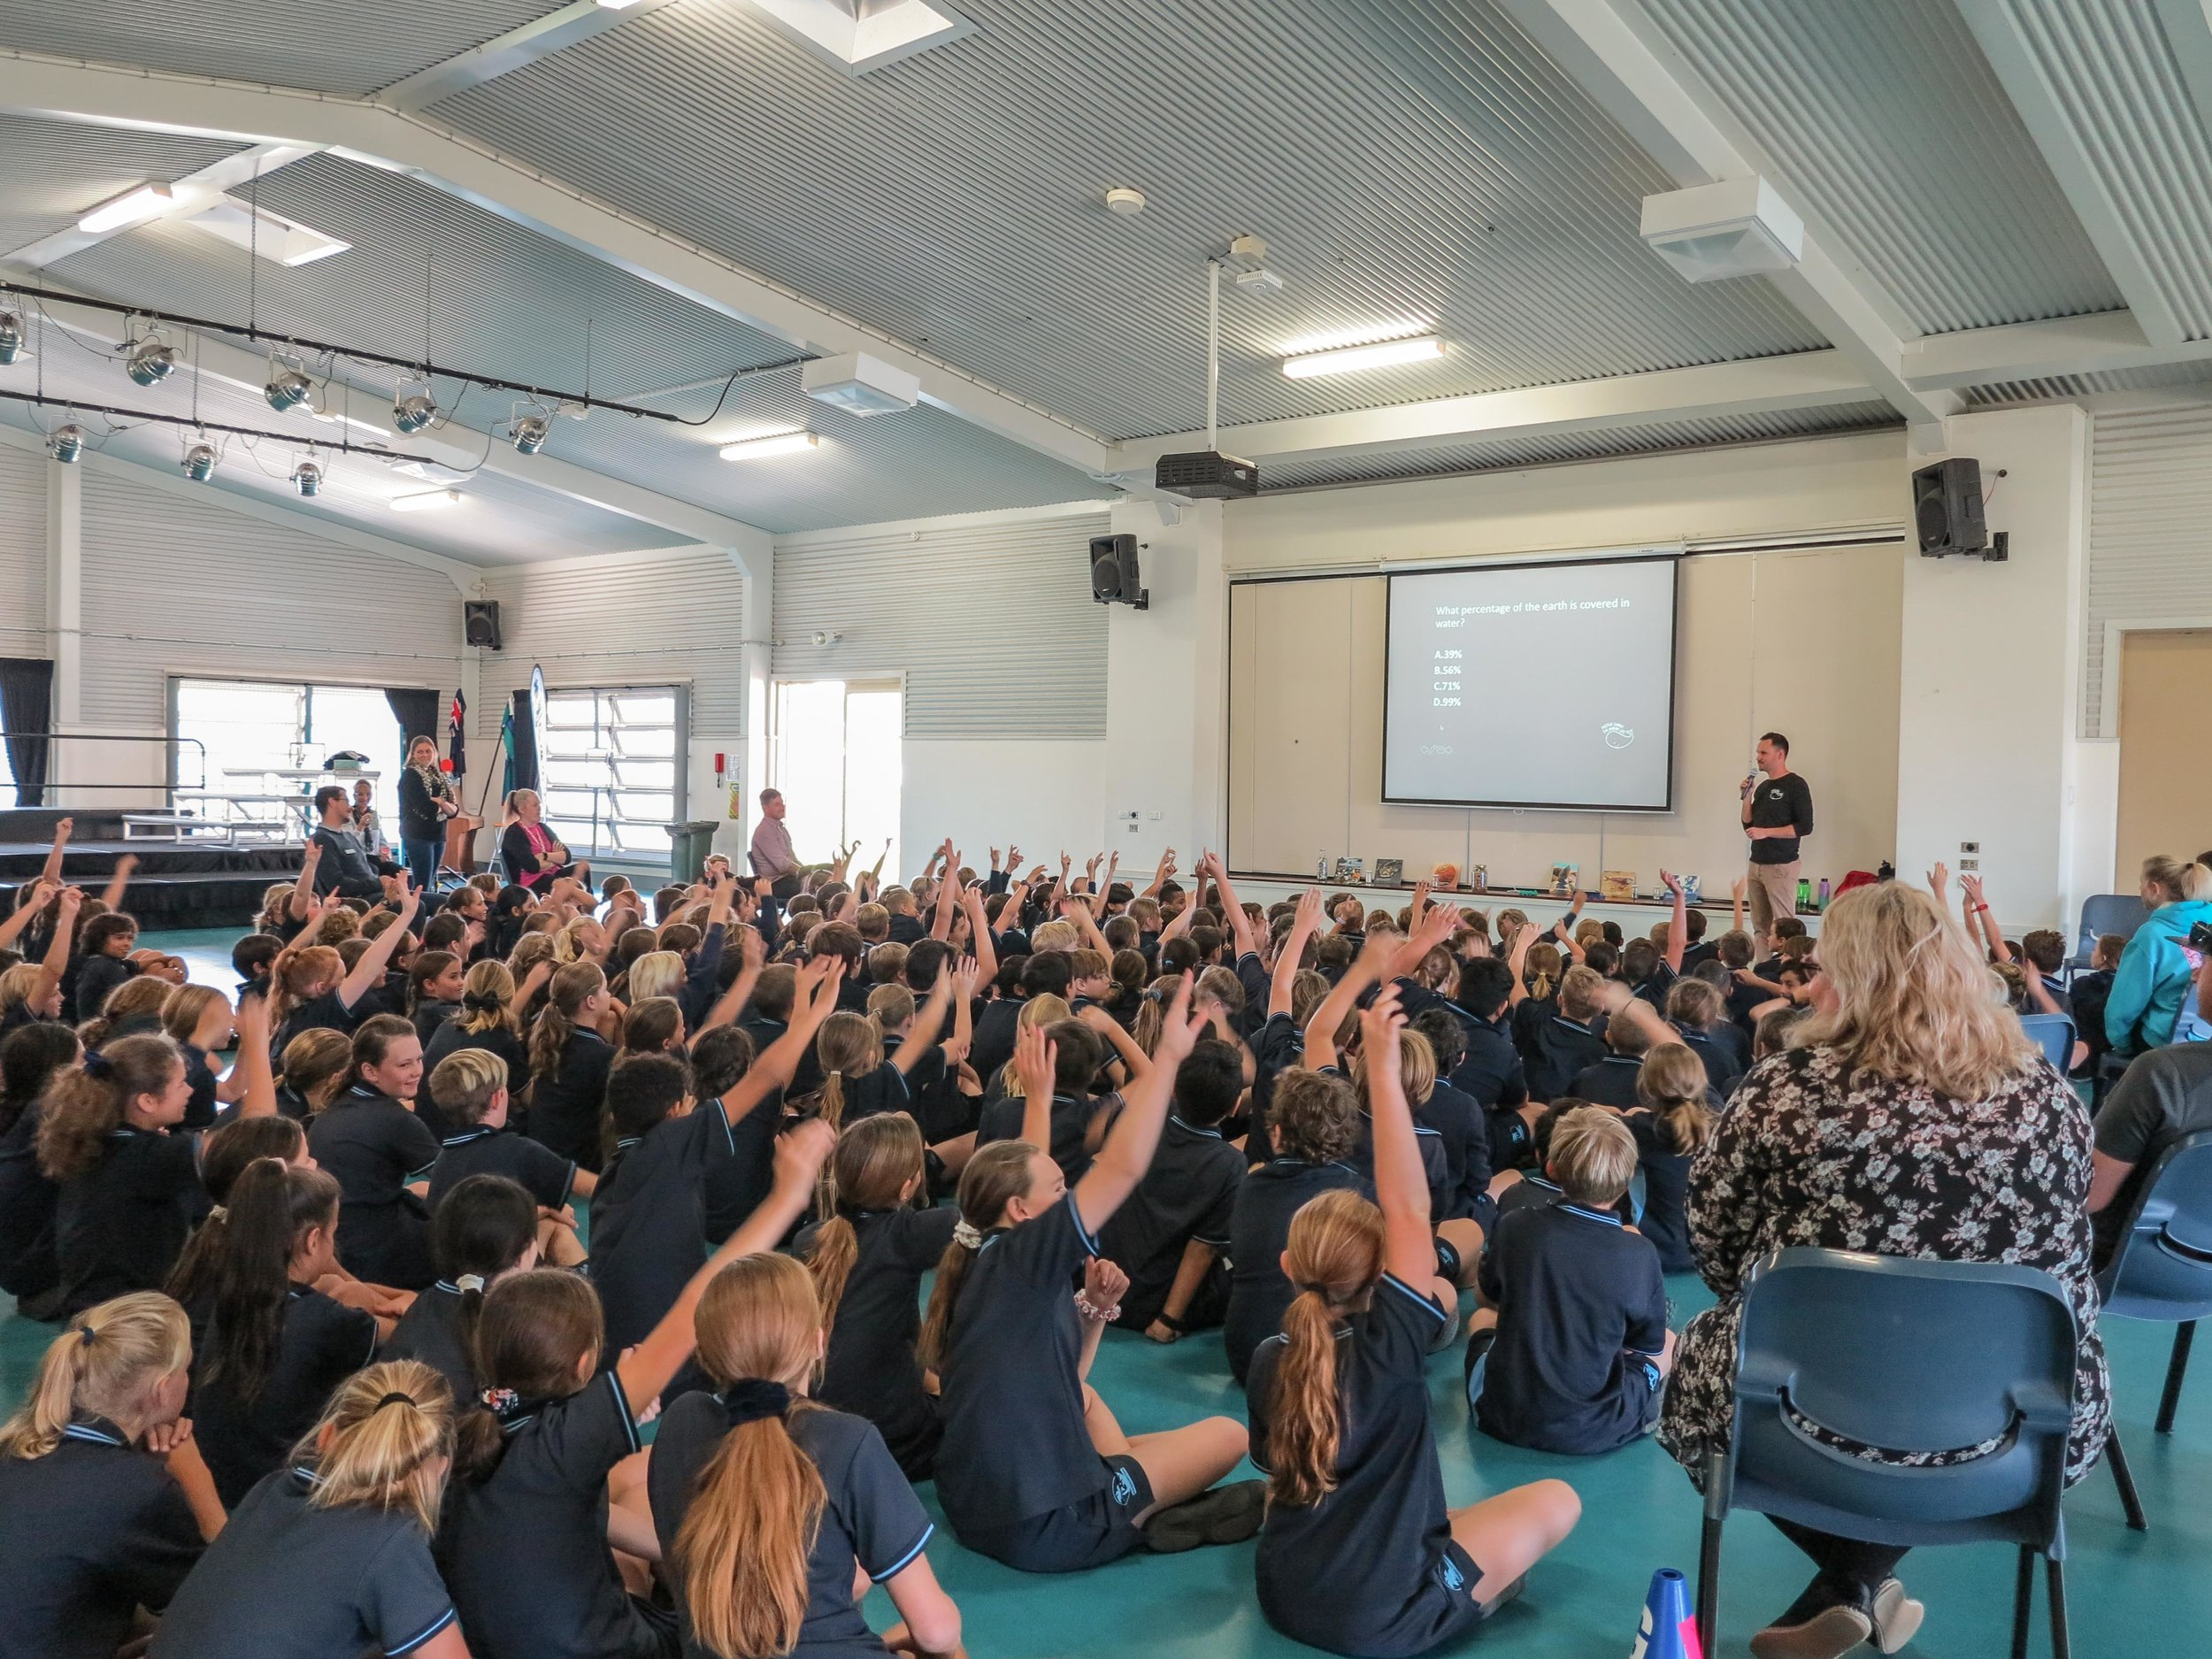 Our CEO presenting to over 200 students at Tallebudgera State School on the Gold Coast.